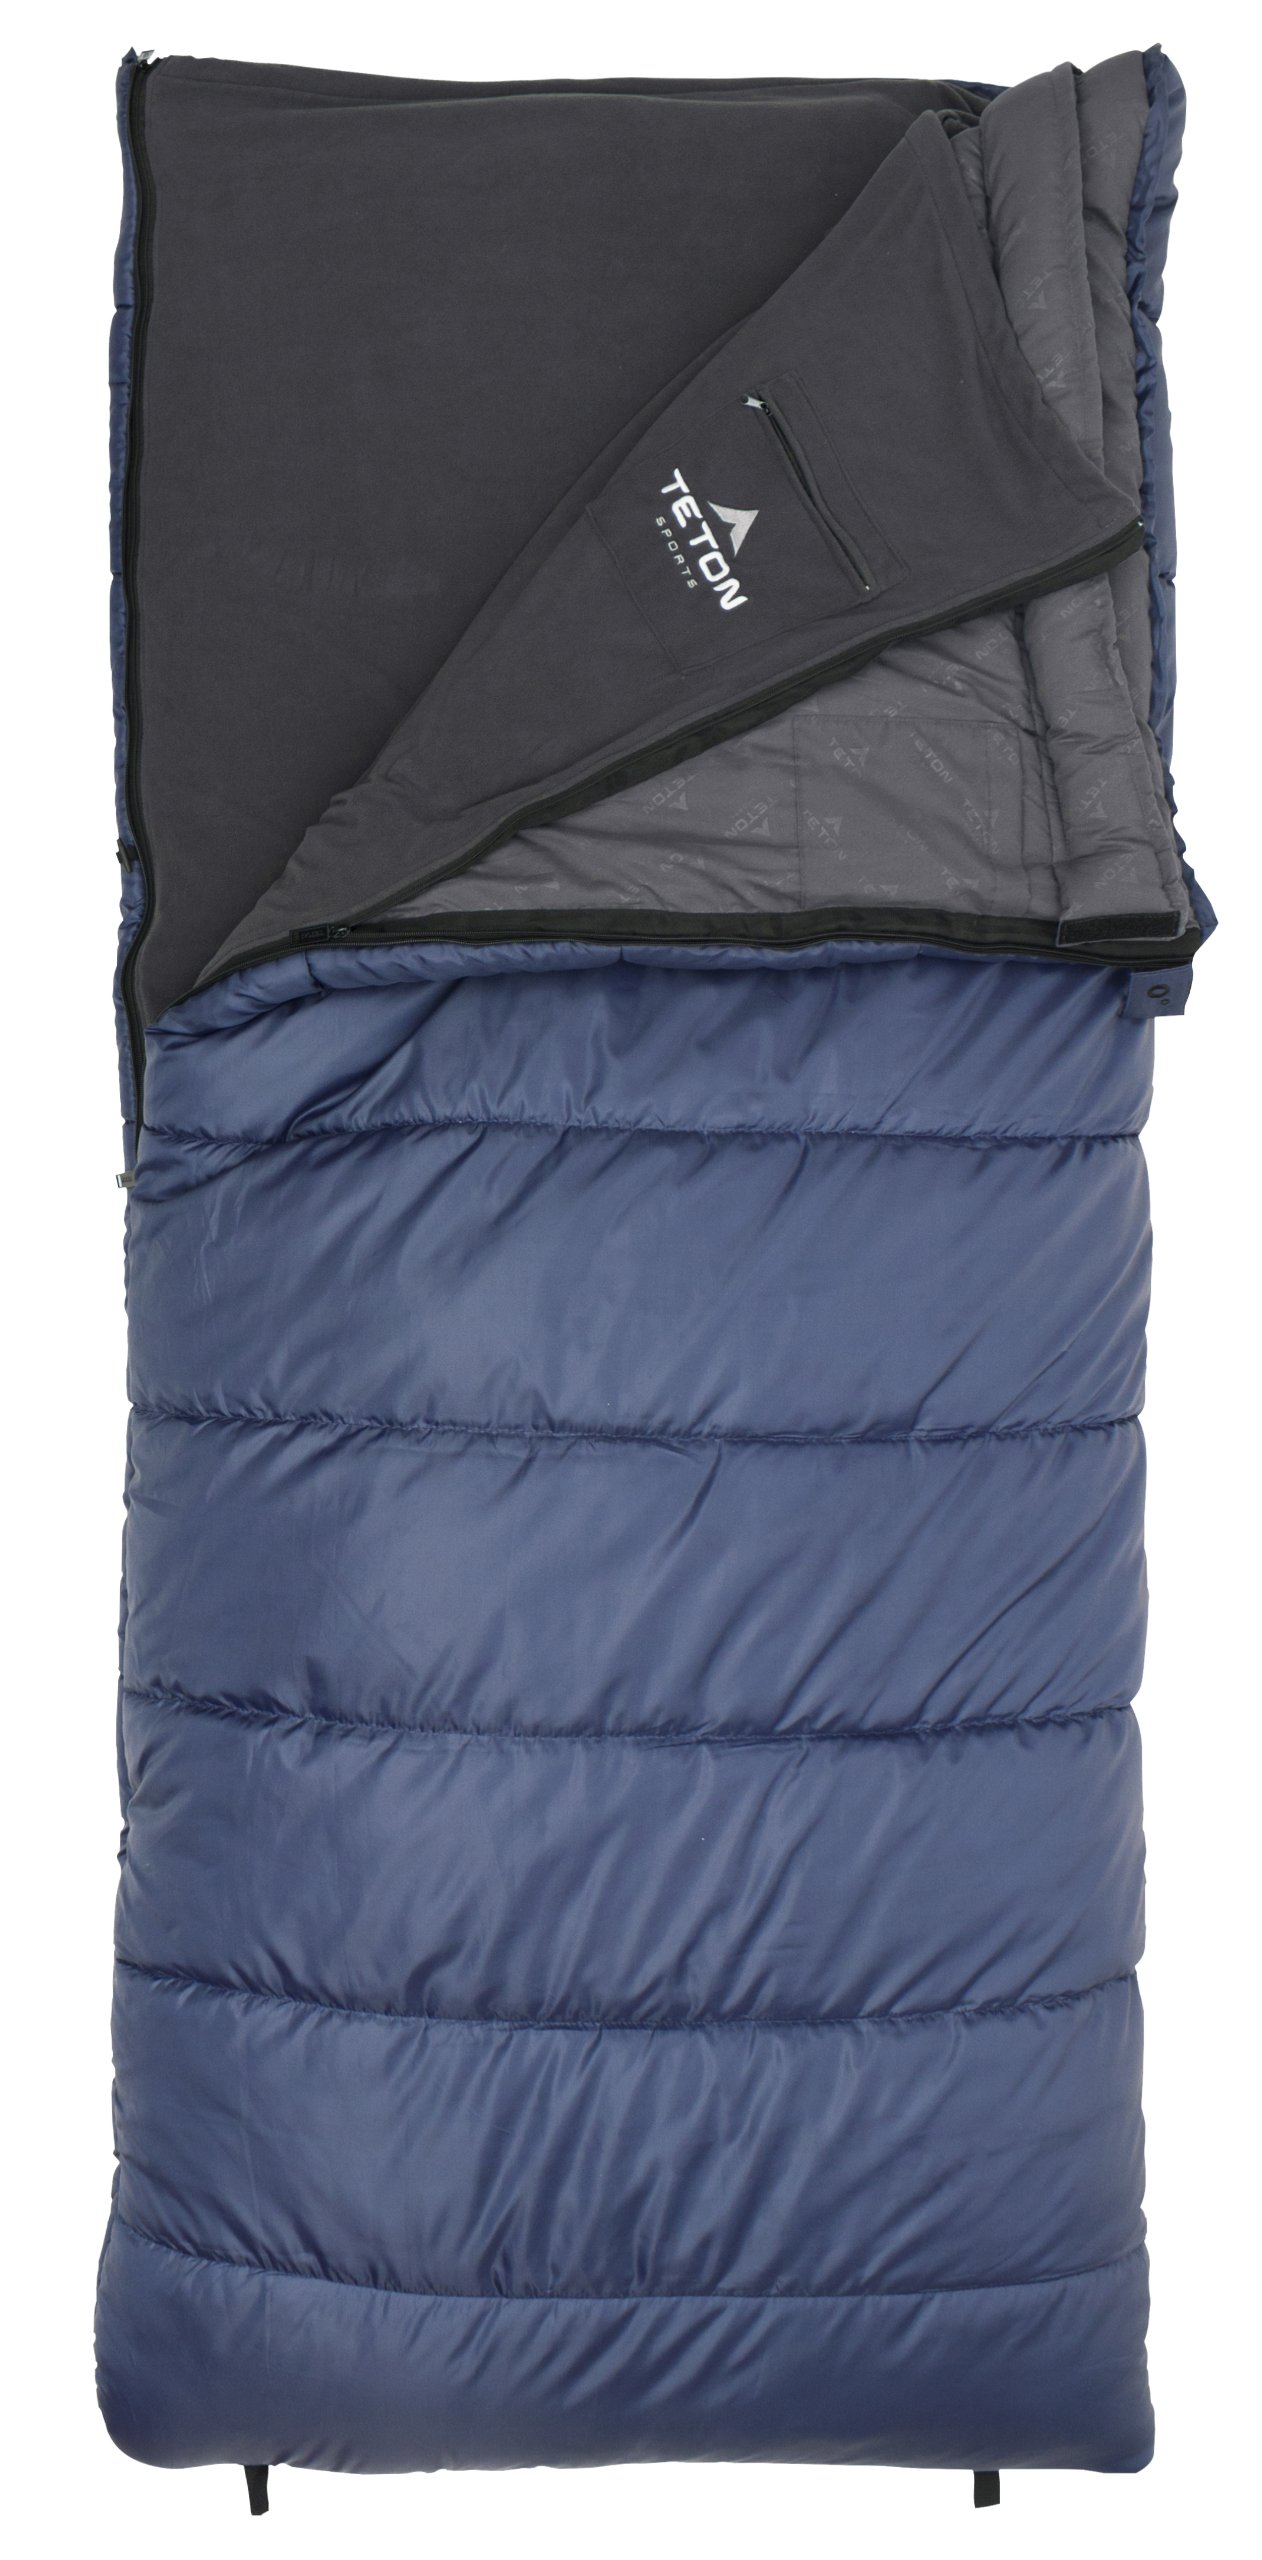 TETON Sports Polara 3-in-1 0F Sleeping Bag; 0 Degree Sleeping Bag Great for Cold Weather Camping and Hunting; Free Compression Sack Included by Teton Sports (Image #2)